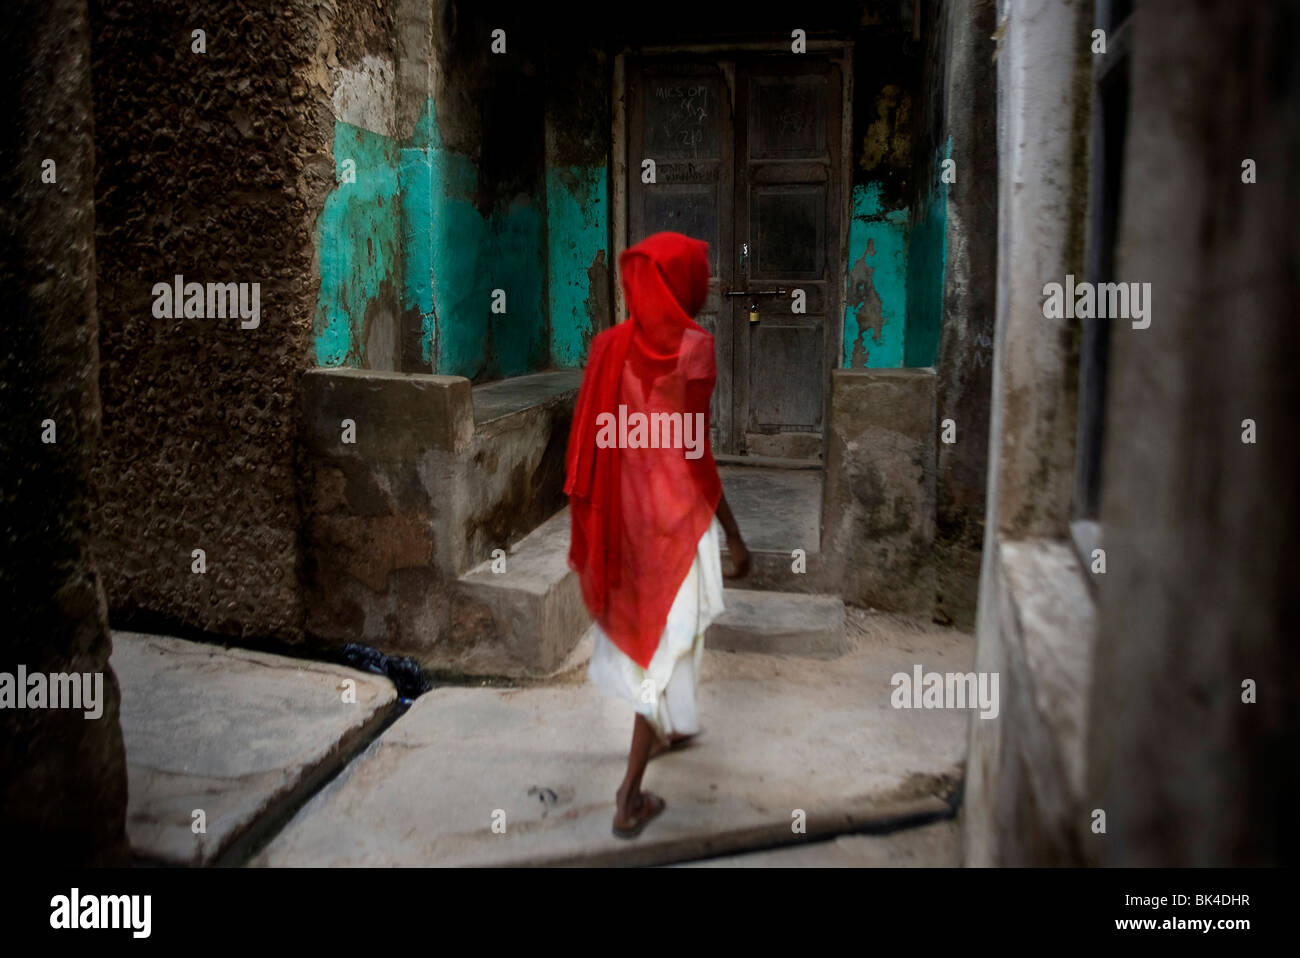 A woman wearing a red veil walks past Swahili houses in the town of Lamu island on August 18, 2009, Kenya. - Stock Image